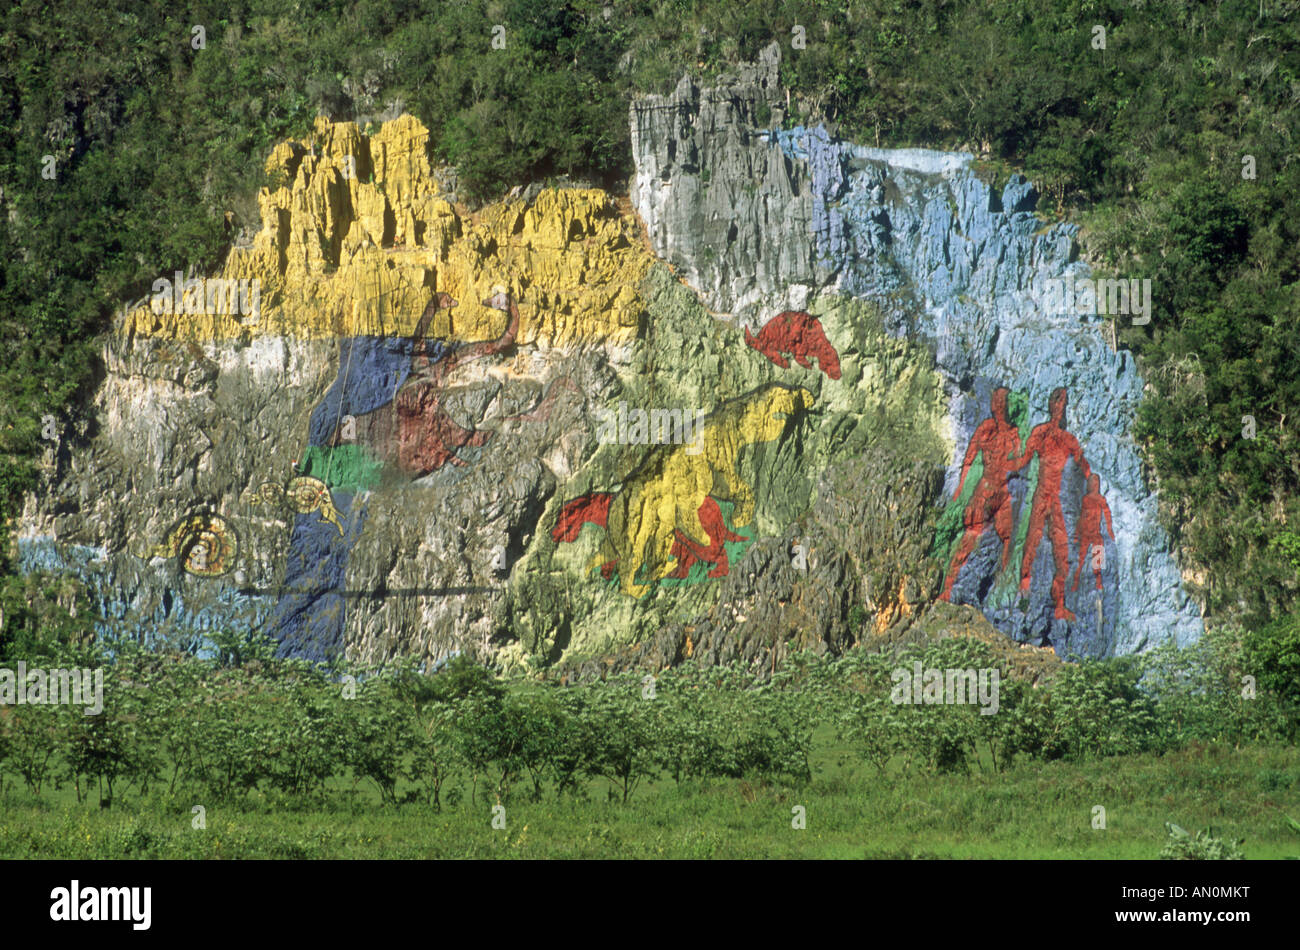 Mural painted on the side of a Mogote or limestone outcrop near Vinales, Cuba. - Stock Image